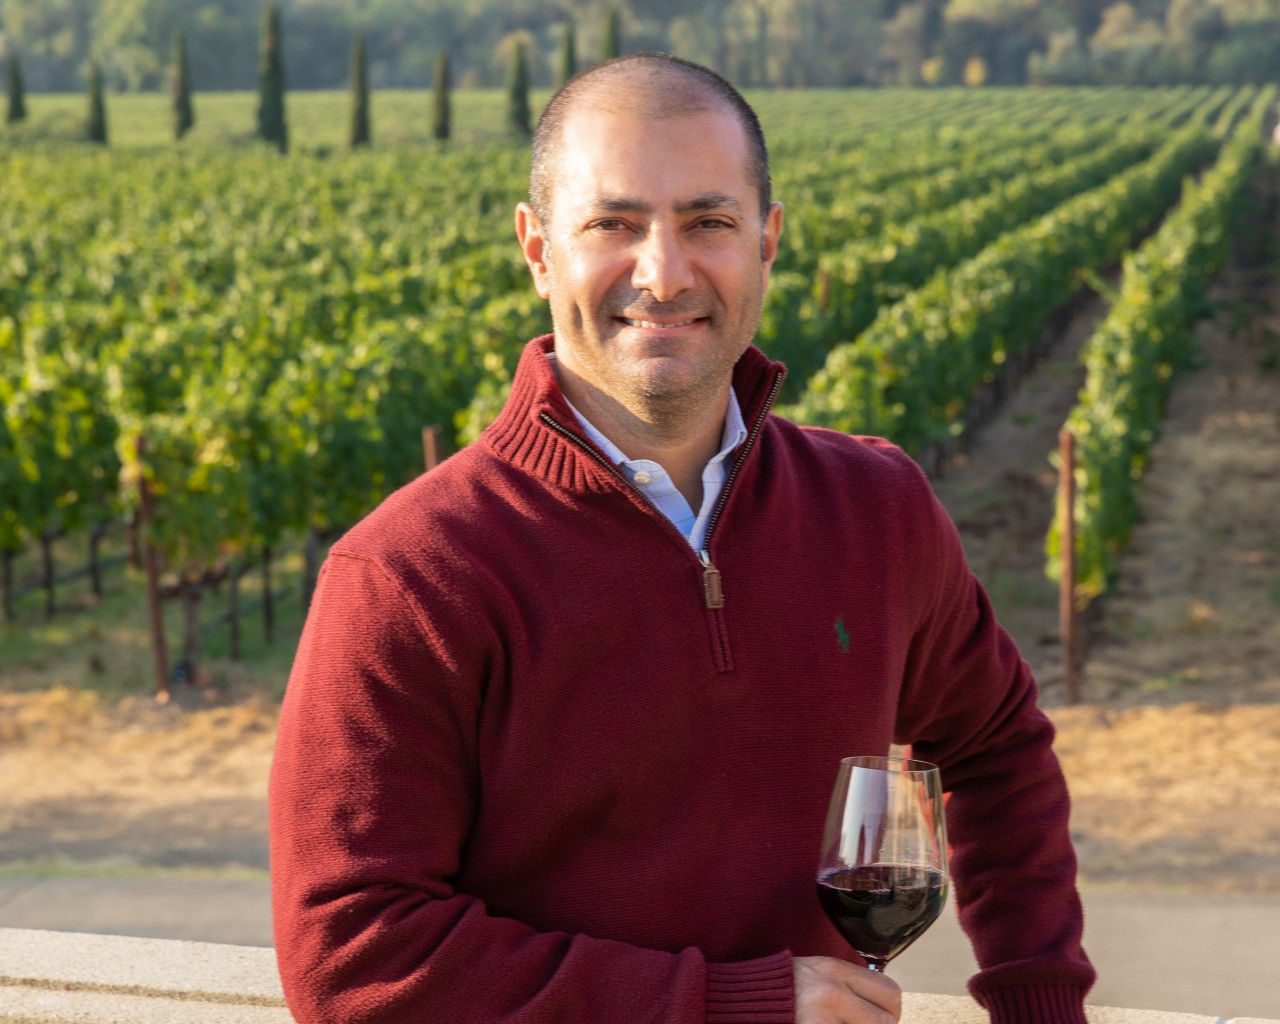 """Gerard Thoukis Of Foley Family Wines Wins """"wine Executive Of The Year"""" Wine Star Award Awarded By Wine Enthusiast Magazine photo"""